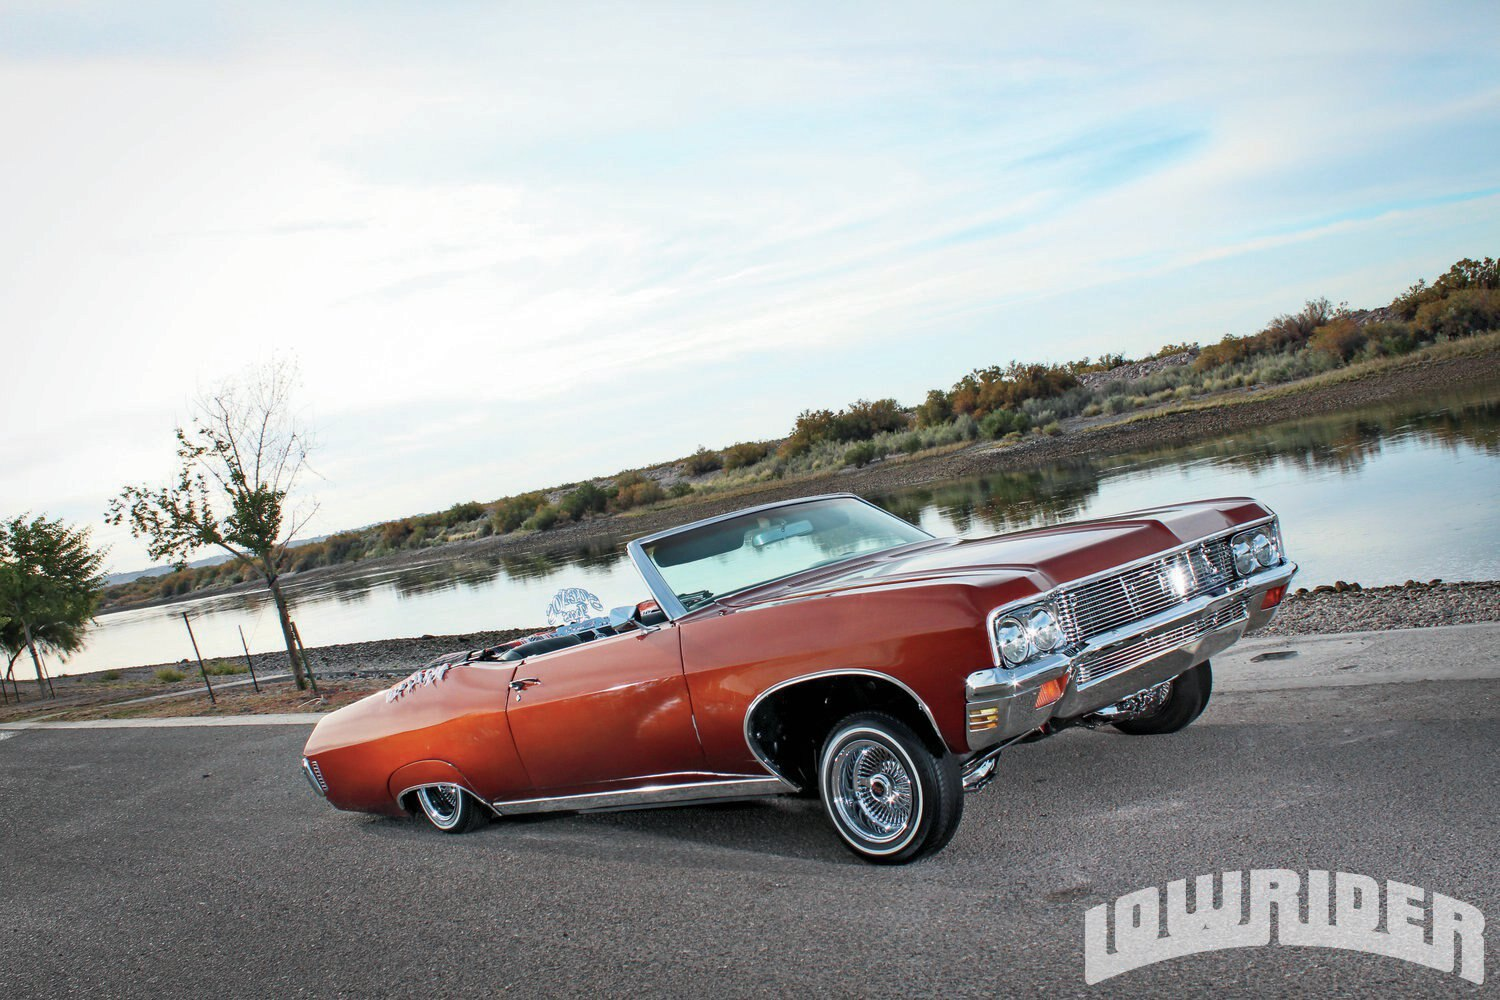 1970-chevrolet-impala-convertible-front-right-side-view-022